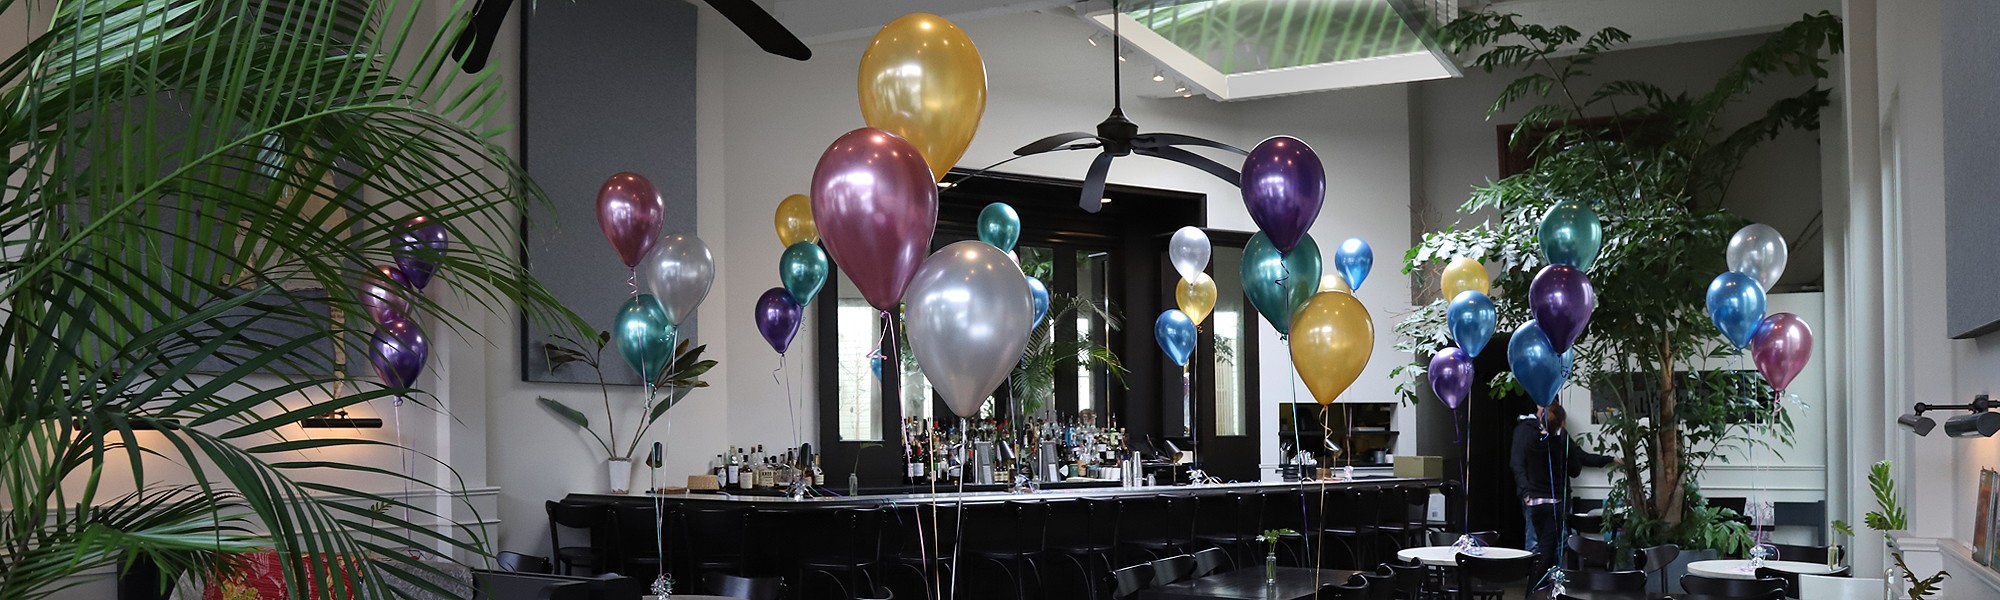 Balloon Tree Centerpieces - Helium - Professionally Arranged and Hand Delivered by BalloonPlanet.com